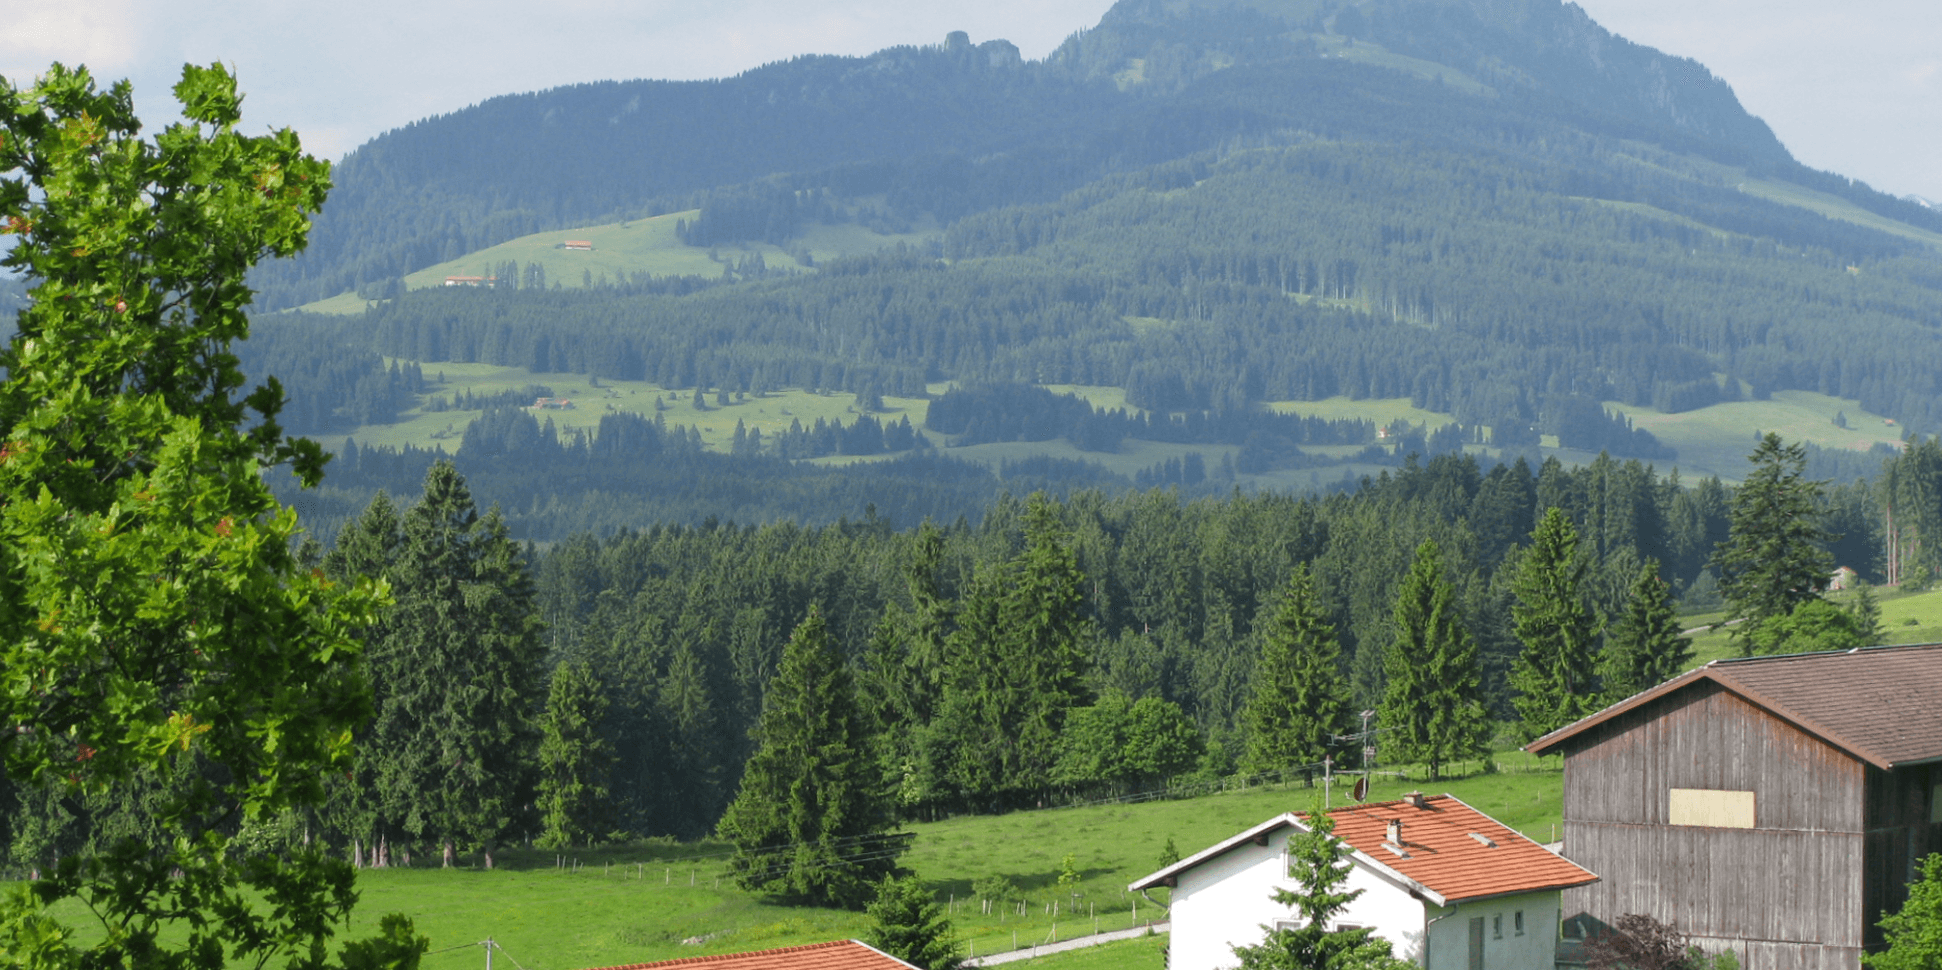 Southern Image of Germany